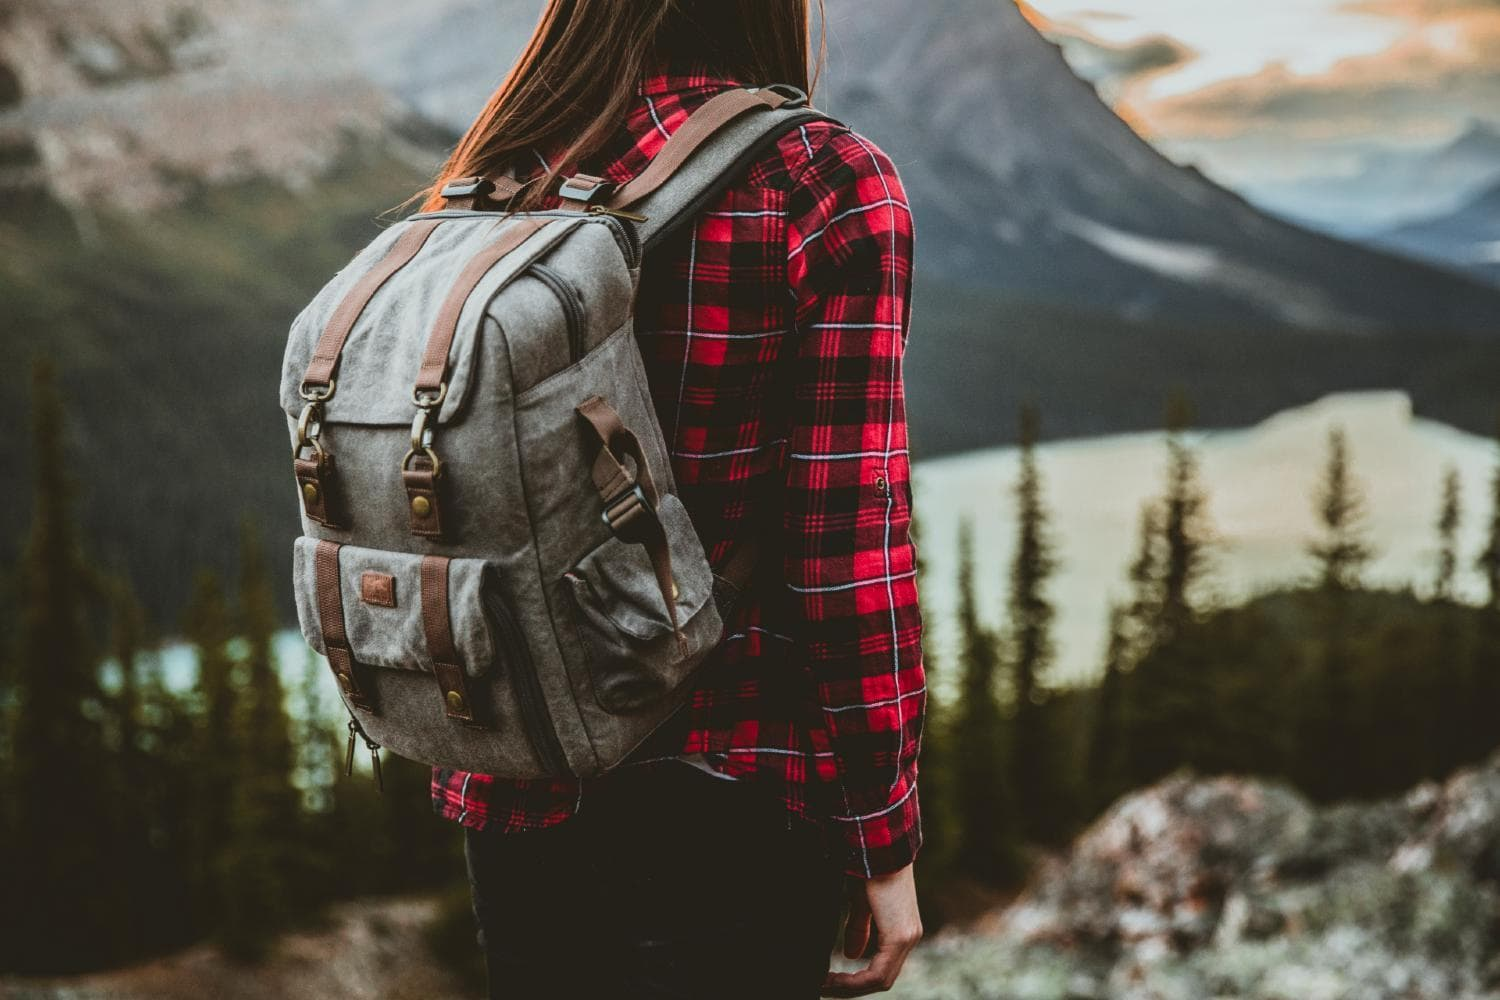 A girl standing with the backpack